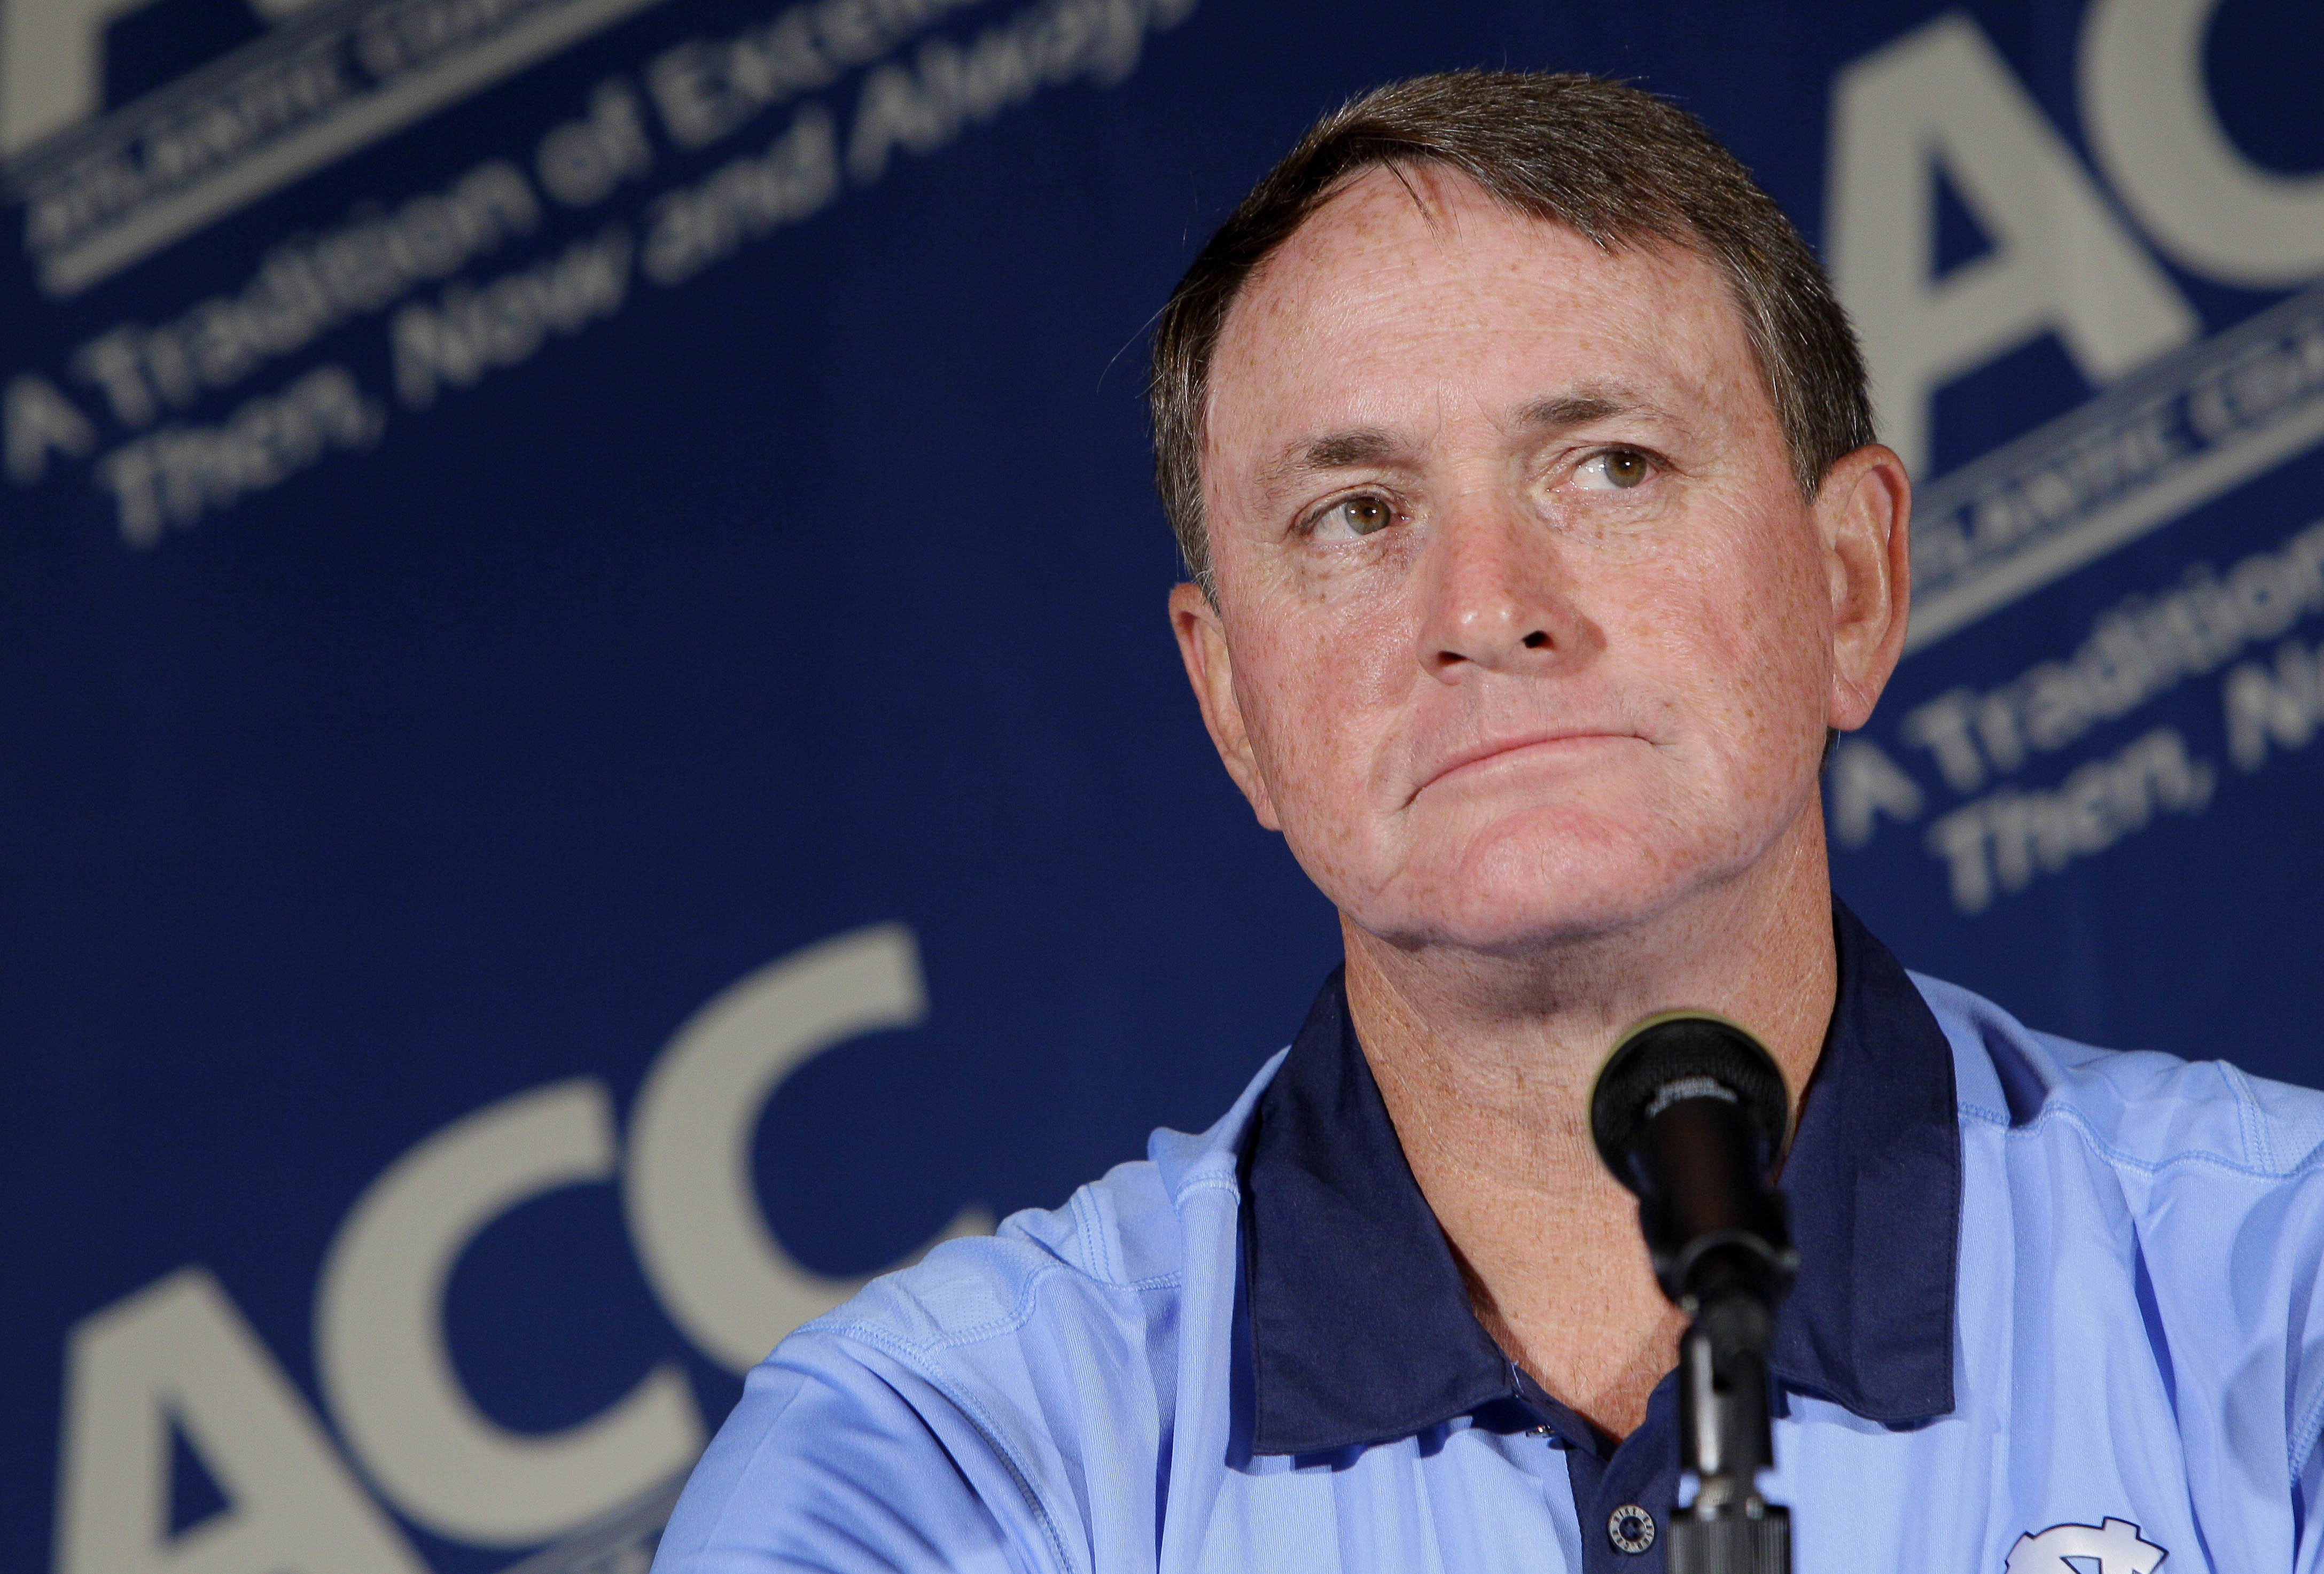 FILE - In this July 25, 2011 file photo, North Carolina coach Butch Davis pauses during interviews at the Atlantic Coast Conference Football Kickoff in Pinehurst, N.C. Davis was hired Monday, Nov. 14, 2016, as the new coach at FIU. (AP Photo/Gerry Broome,